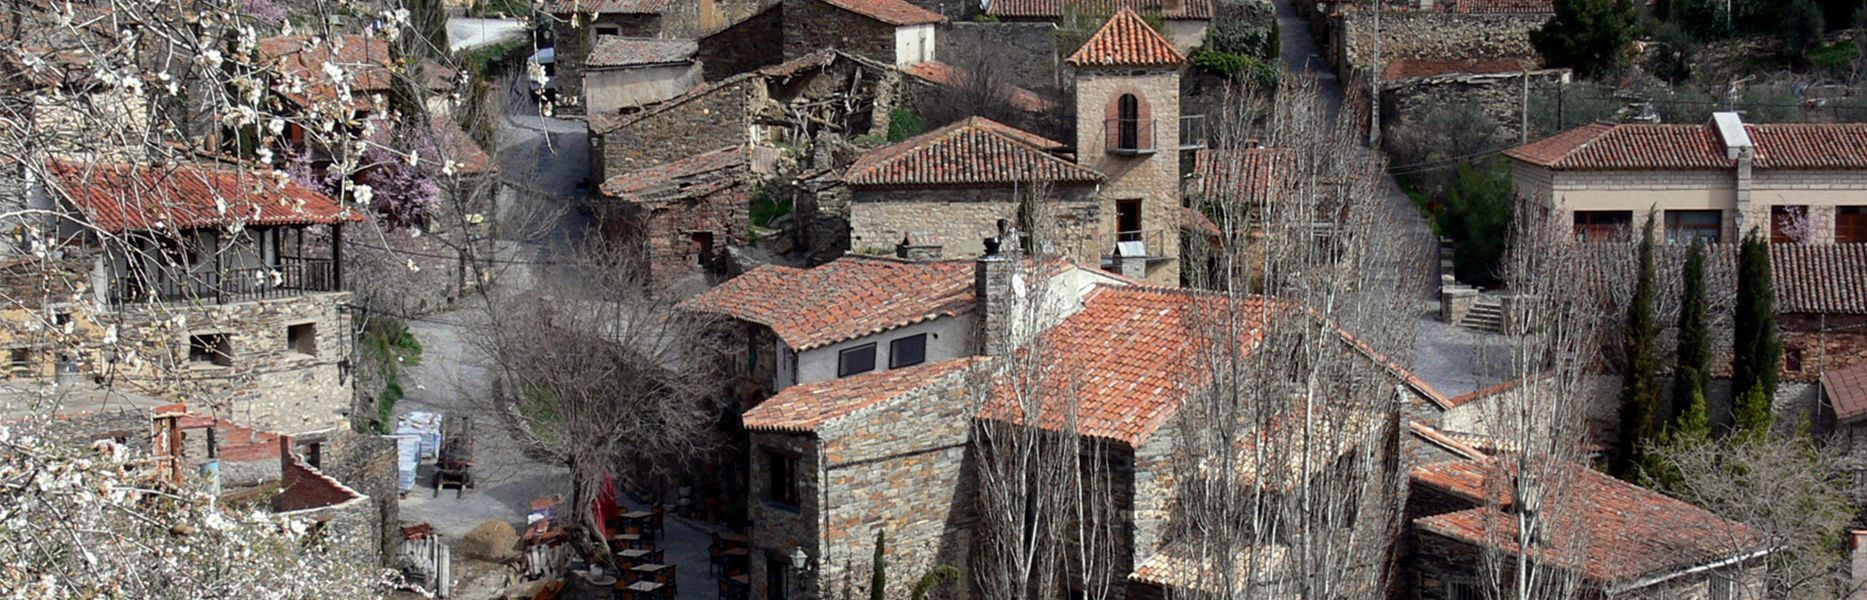 charming-villages-spain